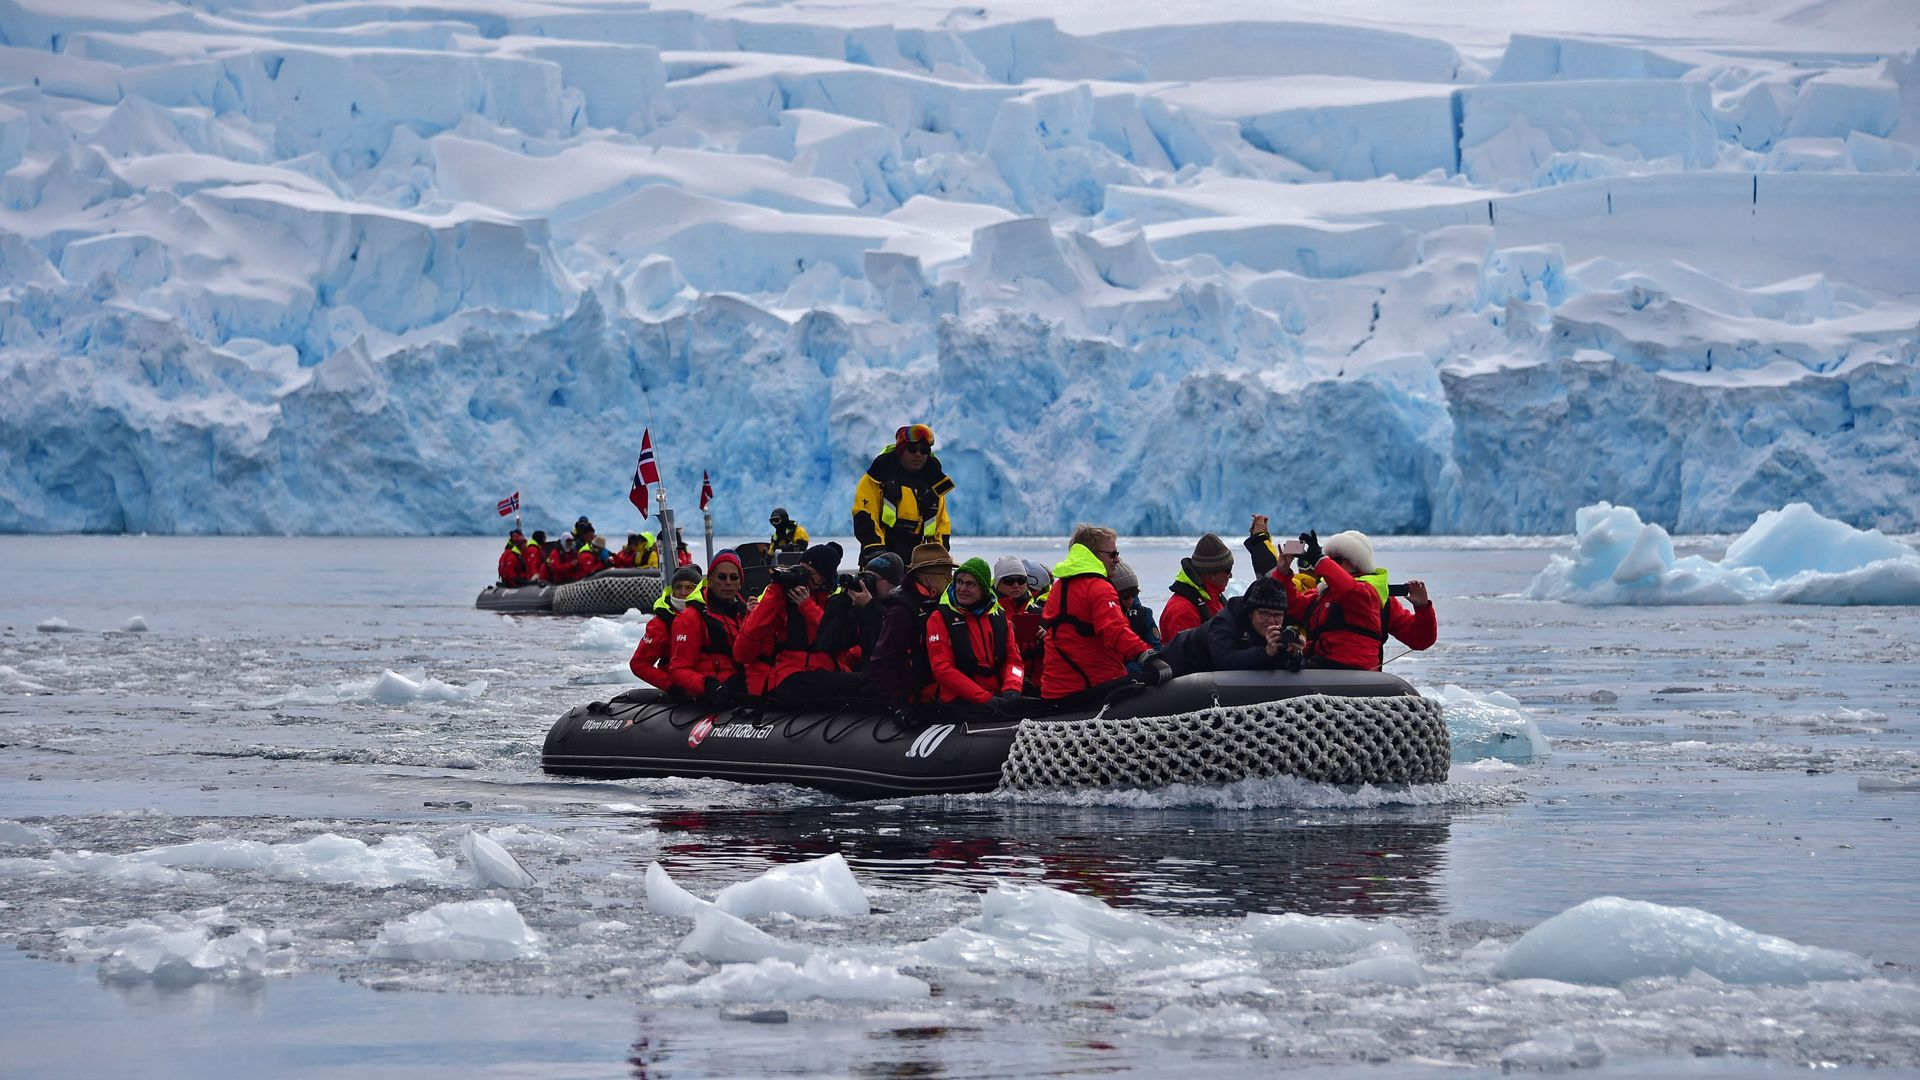 In this image, a large group of people sit in a boat on ice water in the Antarctic